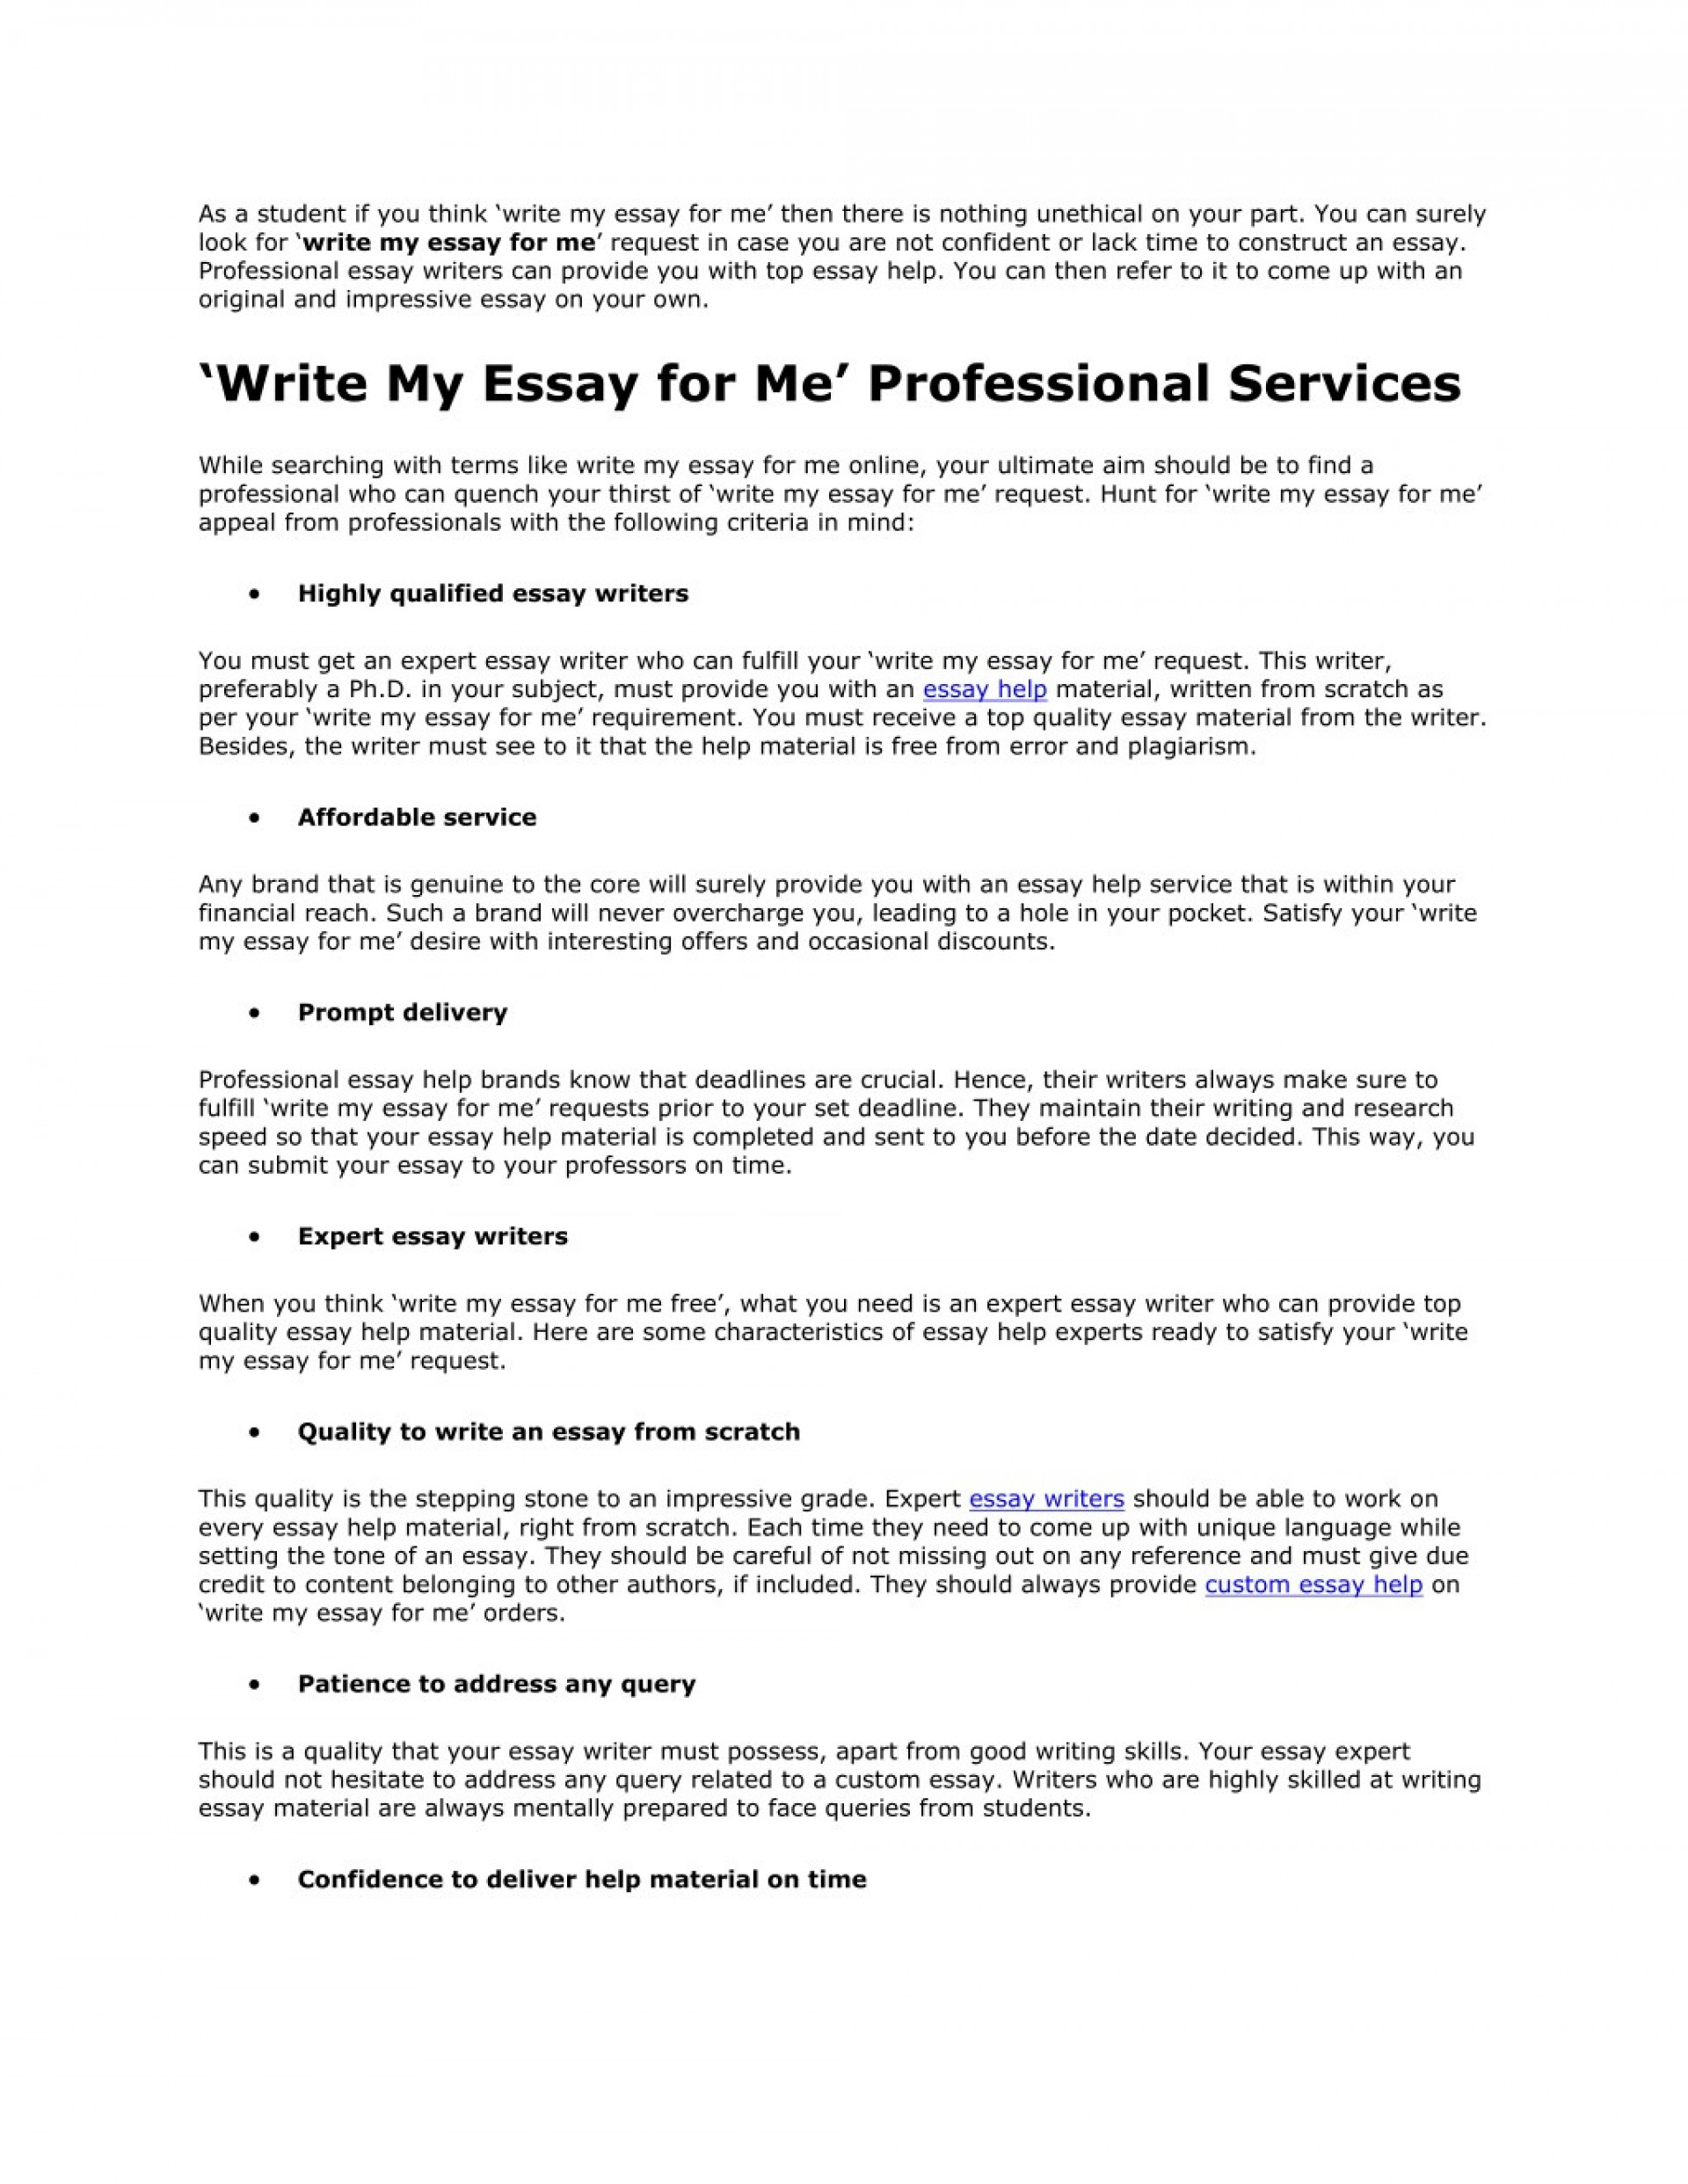 017 Write My Essay For Me Example As Student If You Think Surprising Free College Online 1920